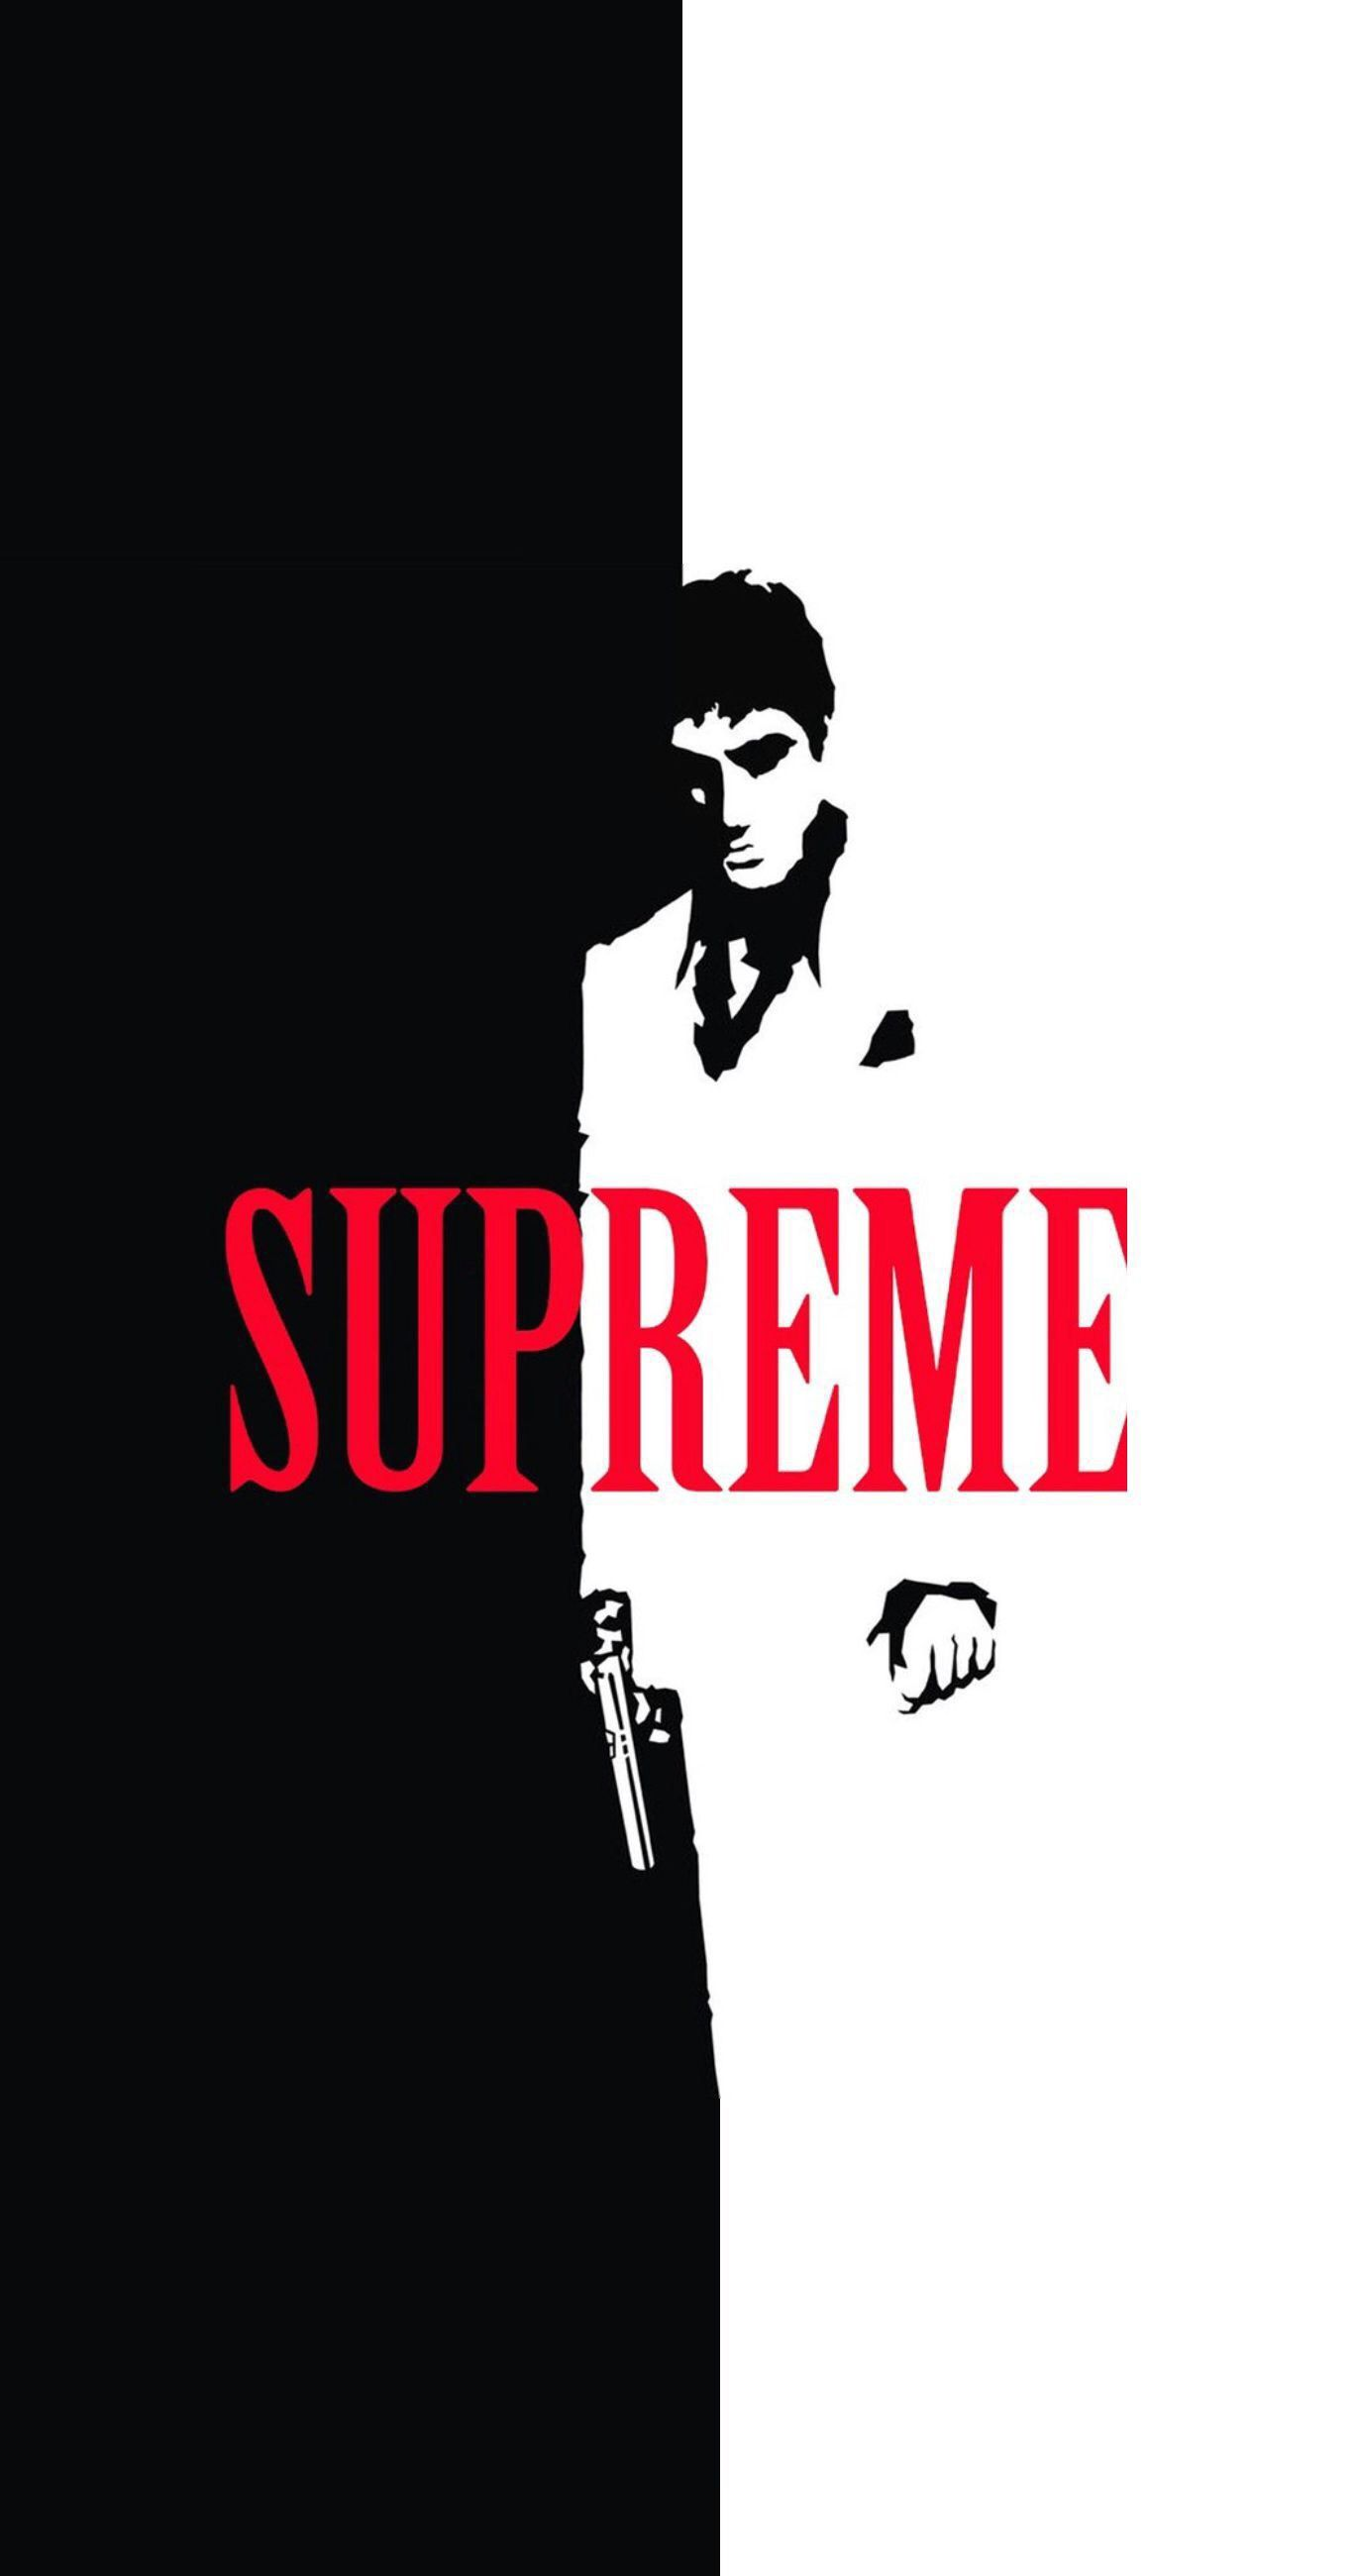 Scarface x Supreme Split IPhone Wallpaper Cool things 1370x2601